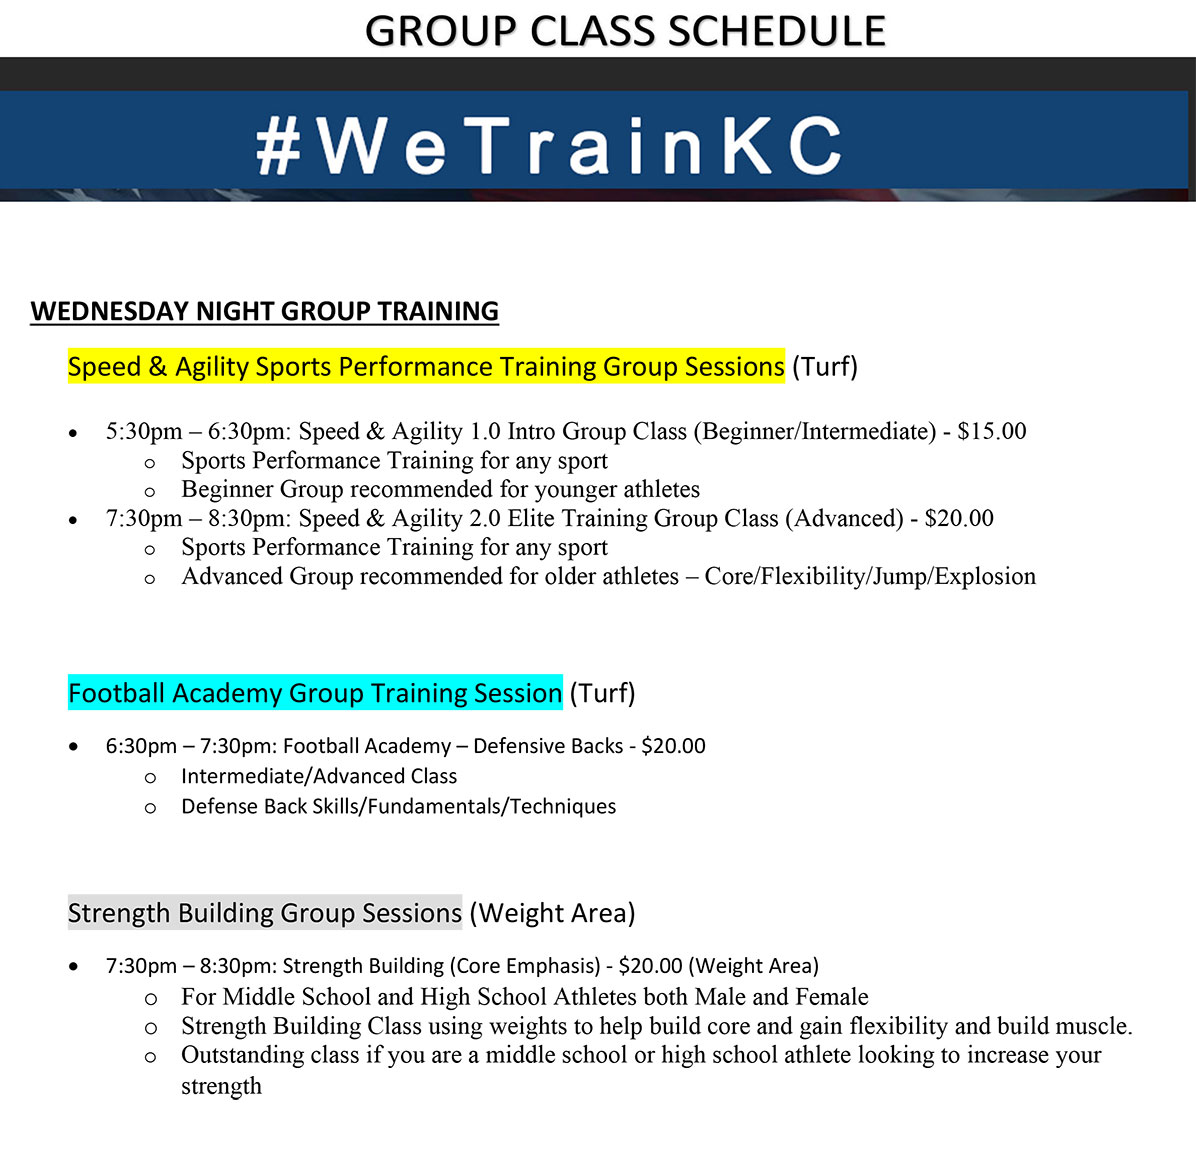 Wednesday Night Group Class Training Schedule at Kansas City Athlete Training in Kansas City Missouri offering Sports Performance Training for girls and boys youth, middle school and high school